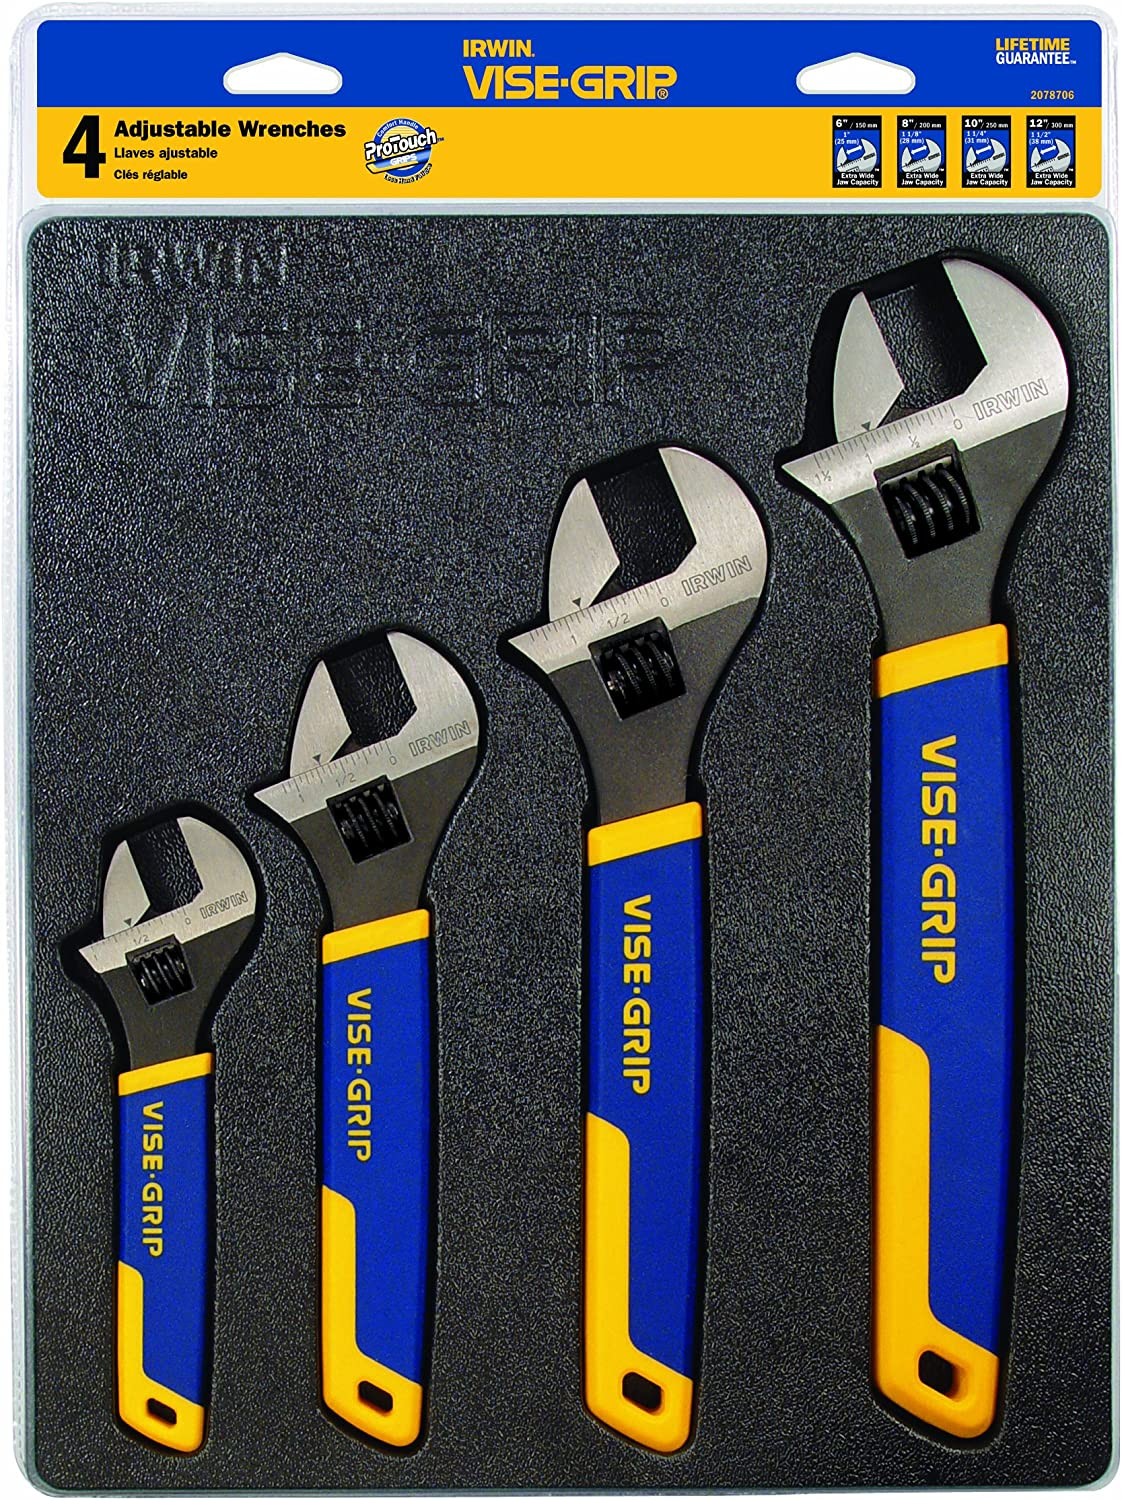 IRWIN Adjustable Wrench 4 piece set